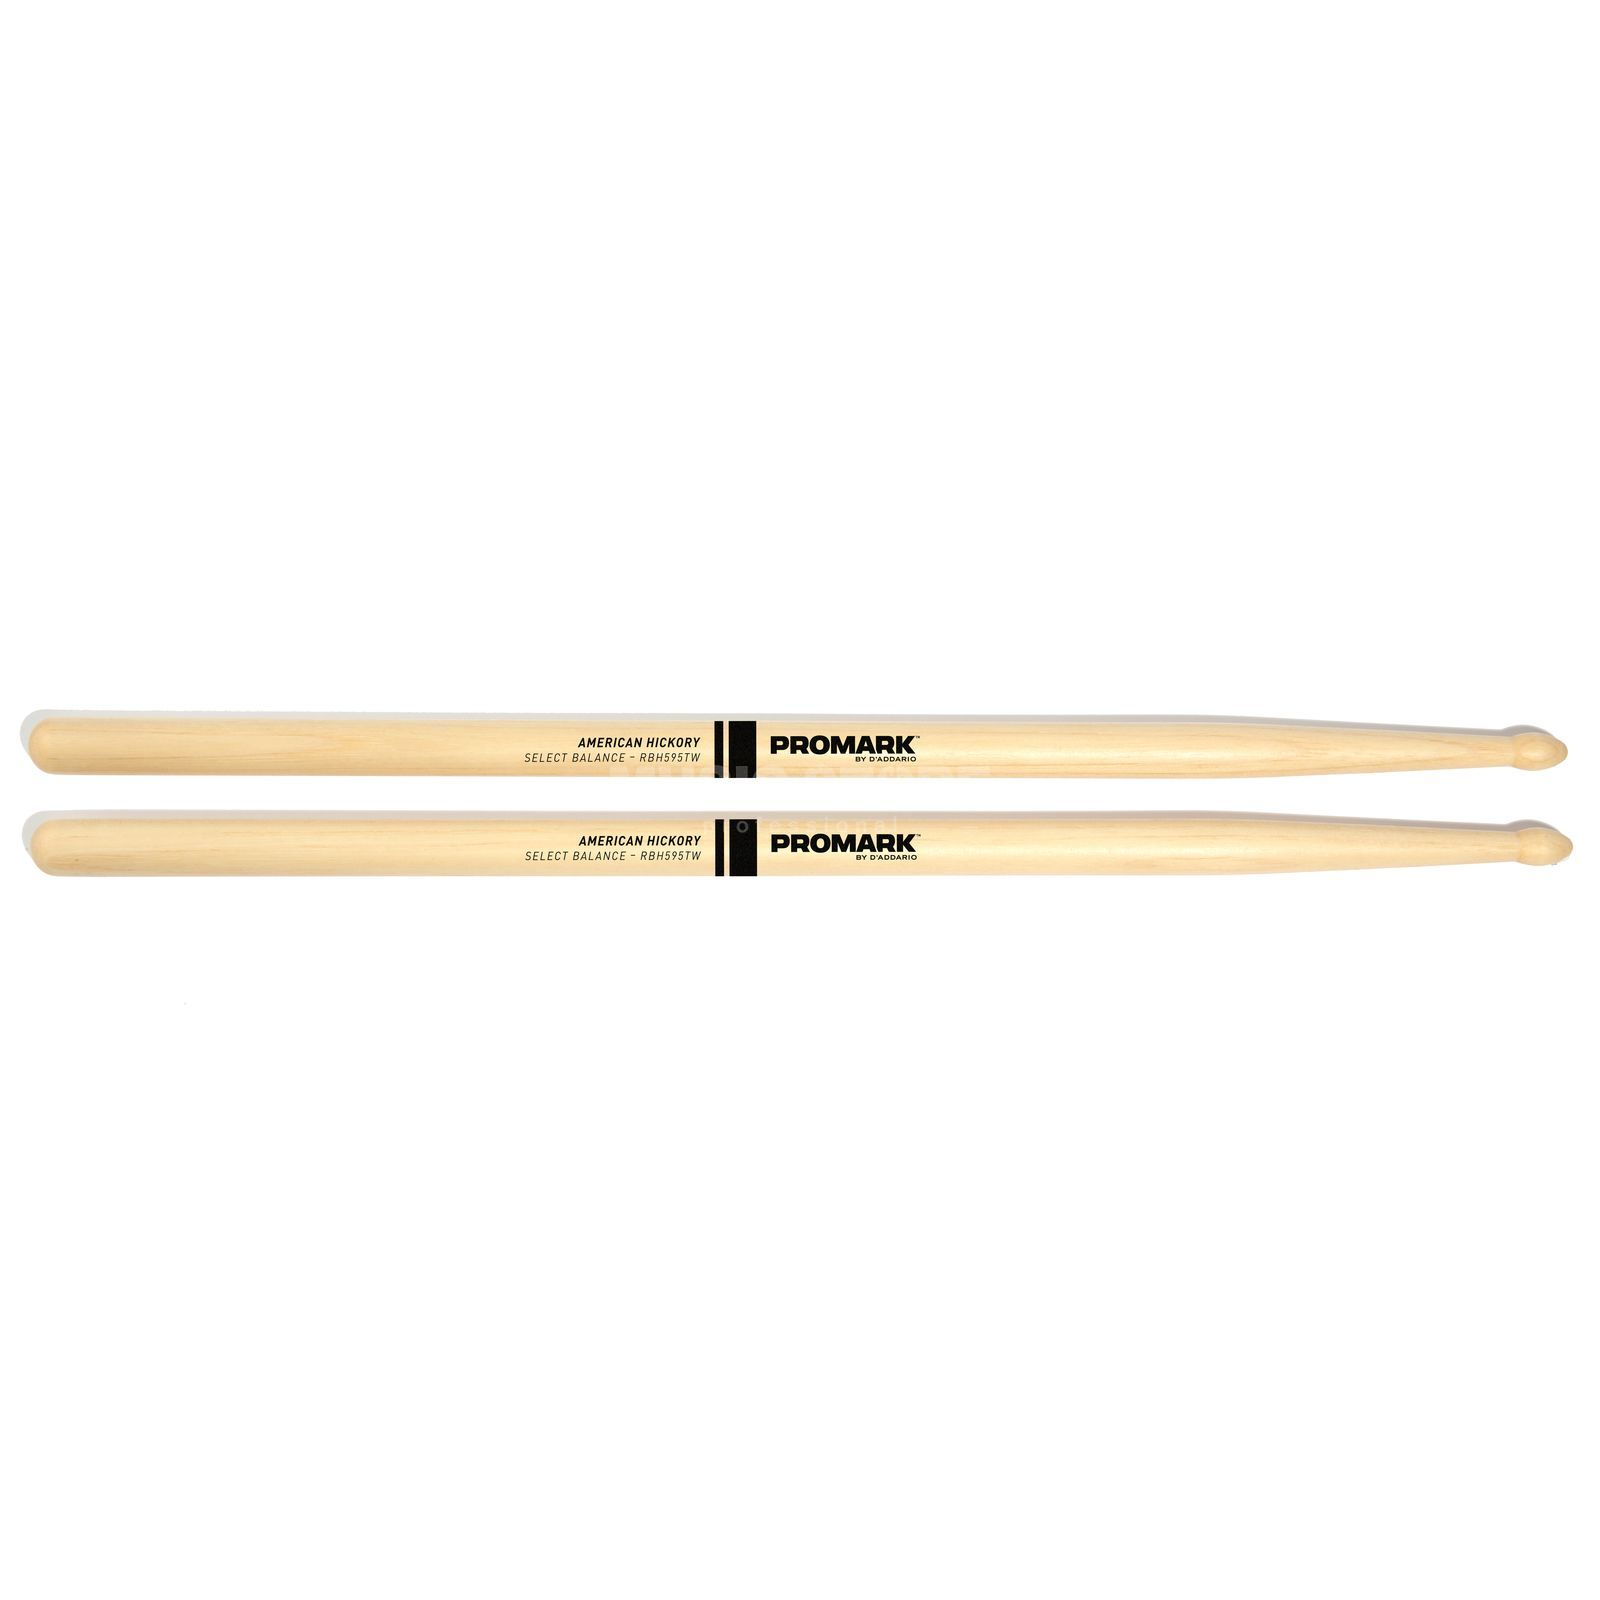 PRO-MARK Select Balance Sticks RBH595TW Rebound Balance, Wood Tip Produktbild